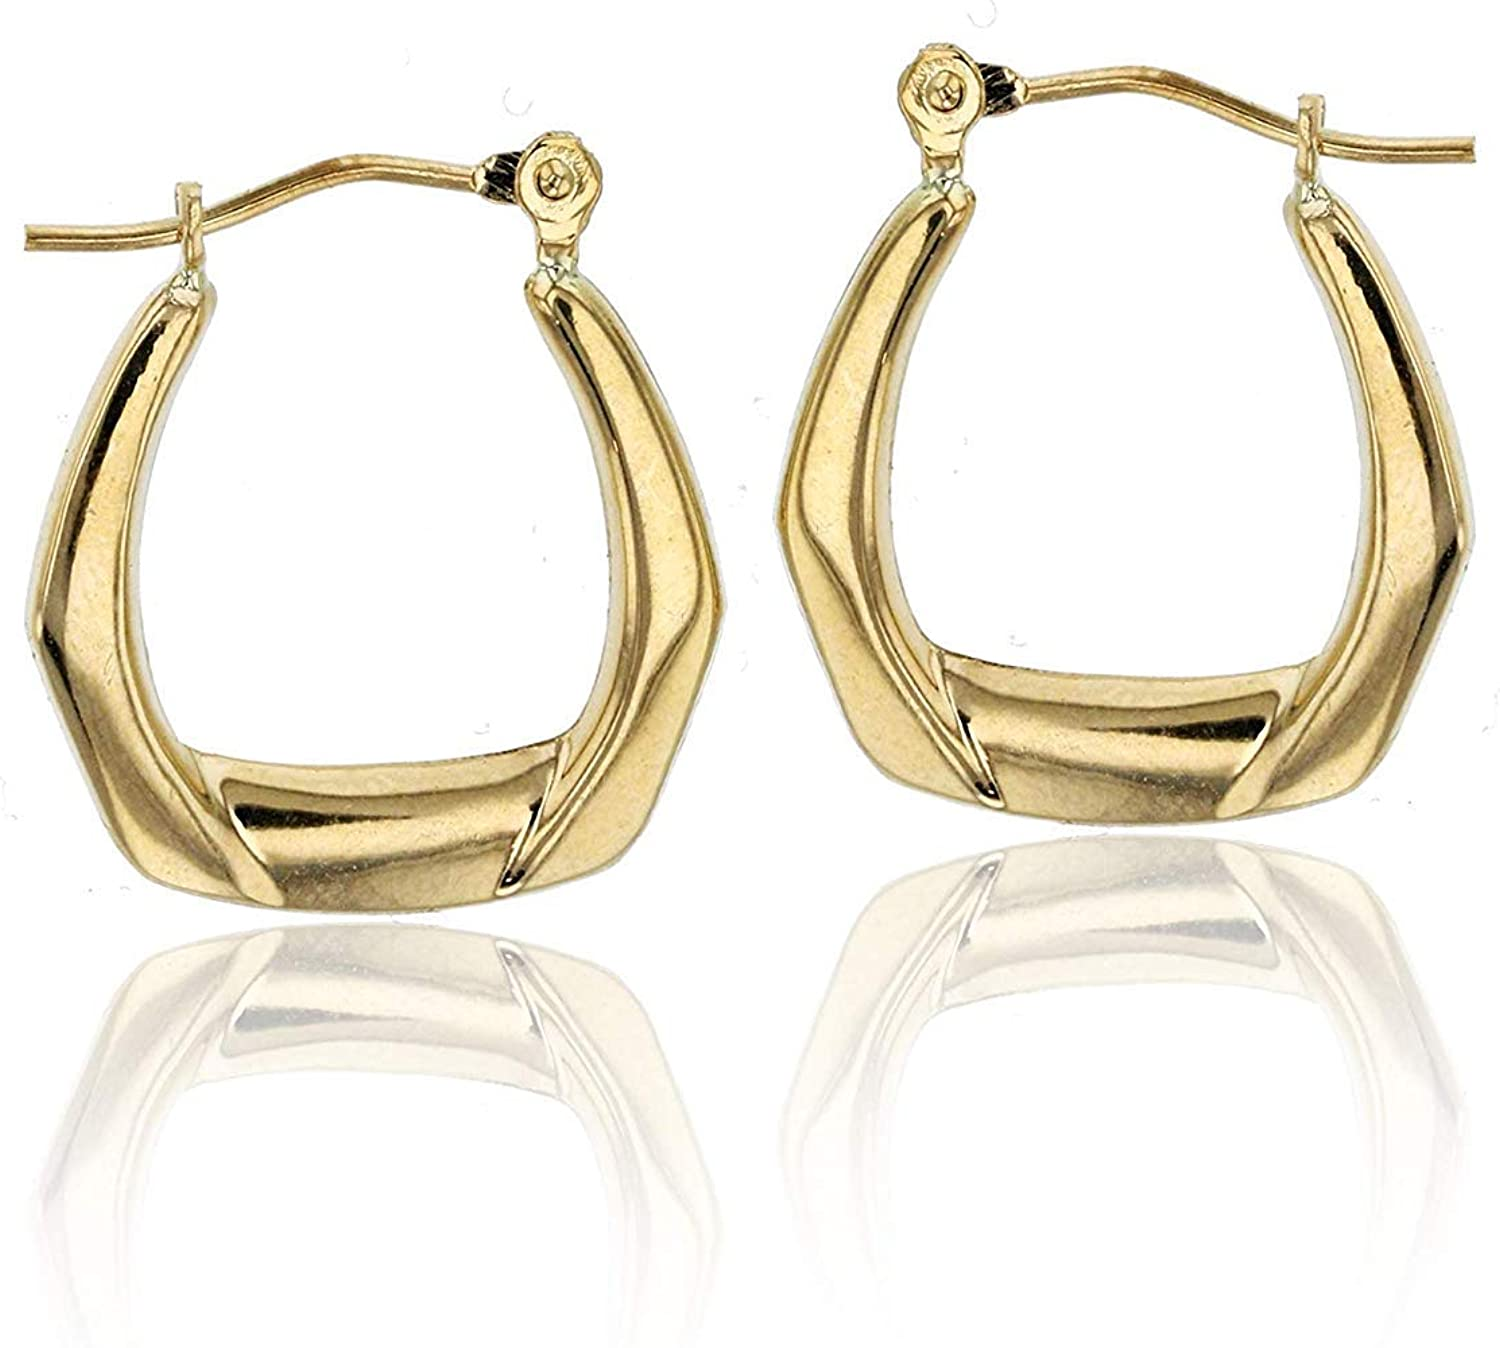 14K Yellow Gold 2mm Thick Hoop Earrings with Hinged Clasp | Hexagon,Textured Hexagon, Square, Elongated and U-shaped | Earrings For Sensitive Ears | Solid Gold Earrings For Women and Girls